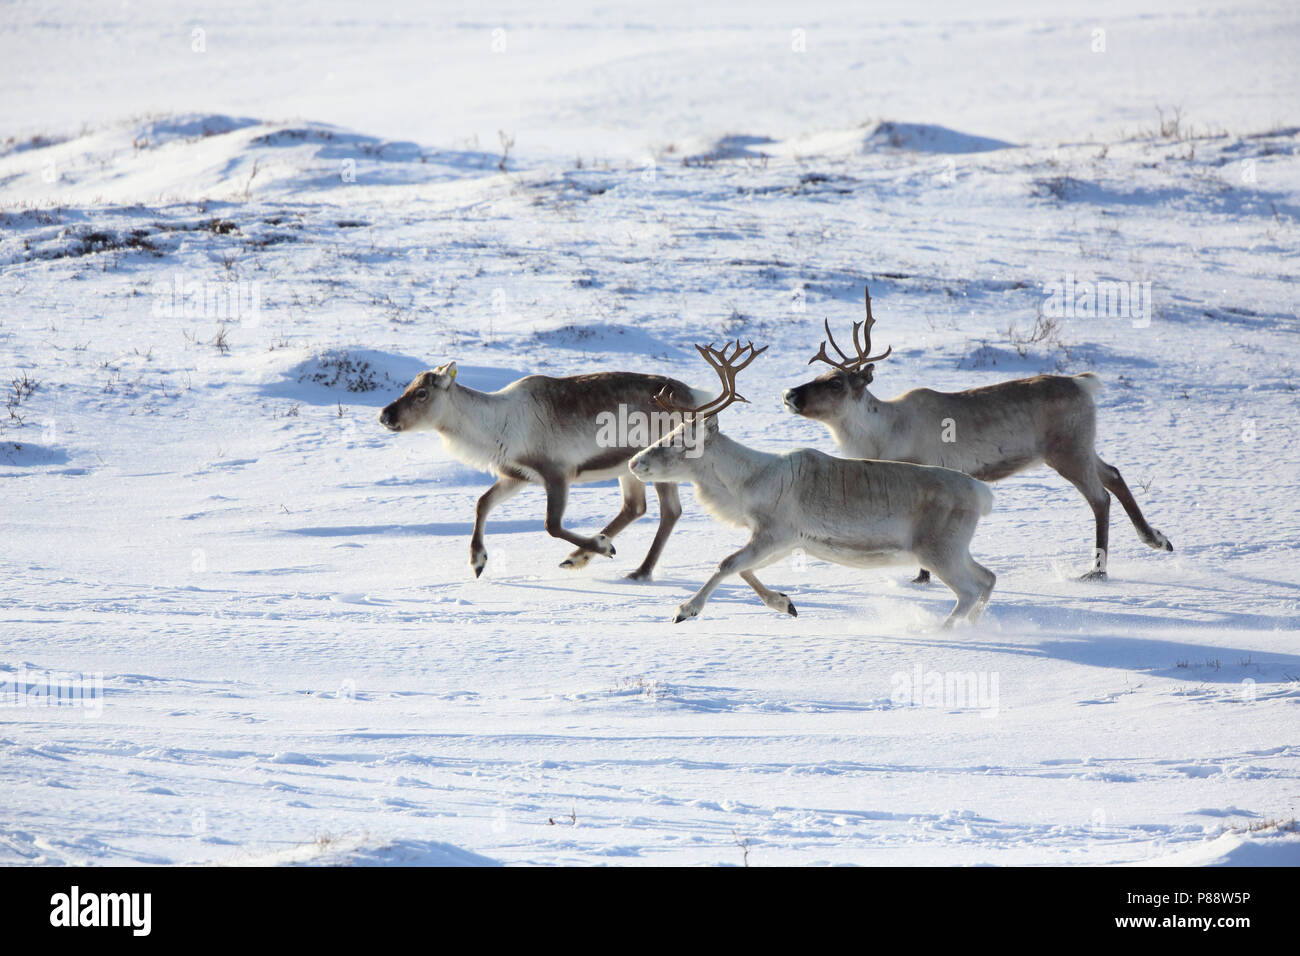 Drie rennende Rendieren; Three running Reindeers - Stock Image